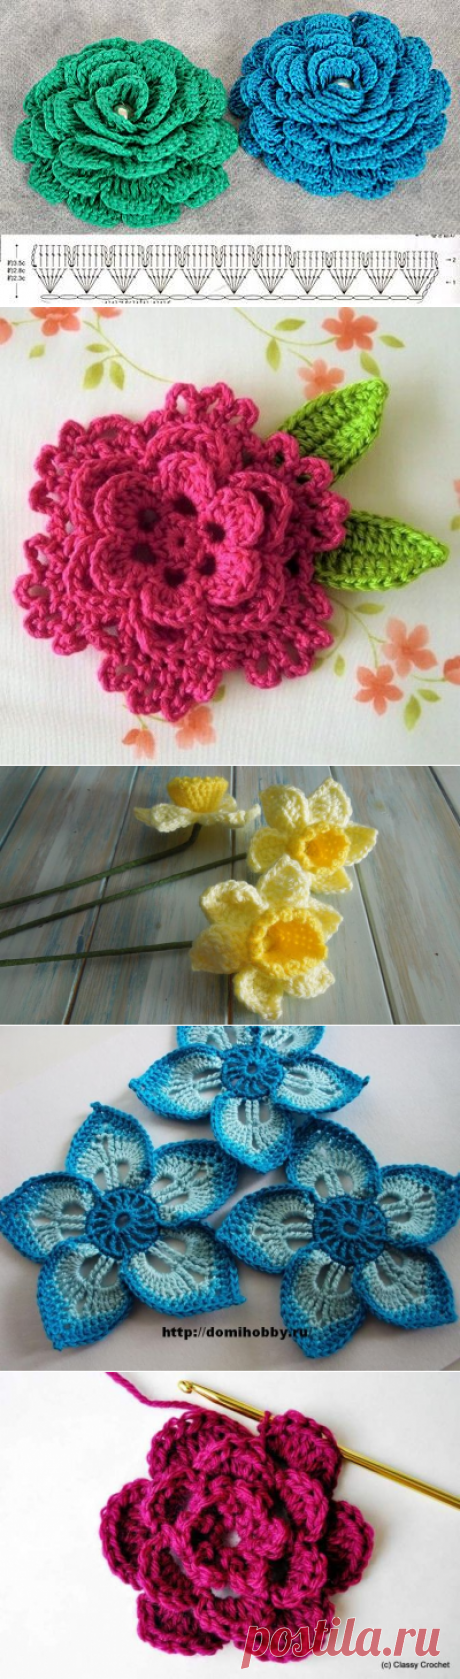 Crochet flowers and leaves - Picmia